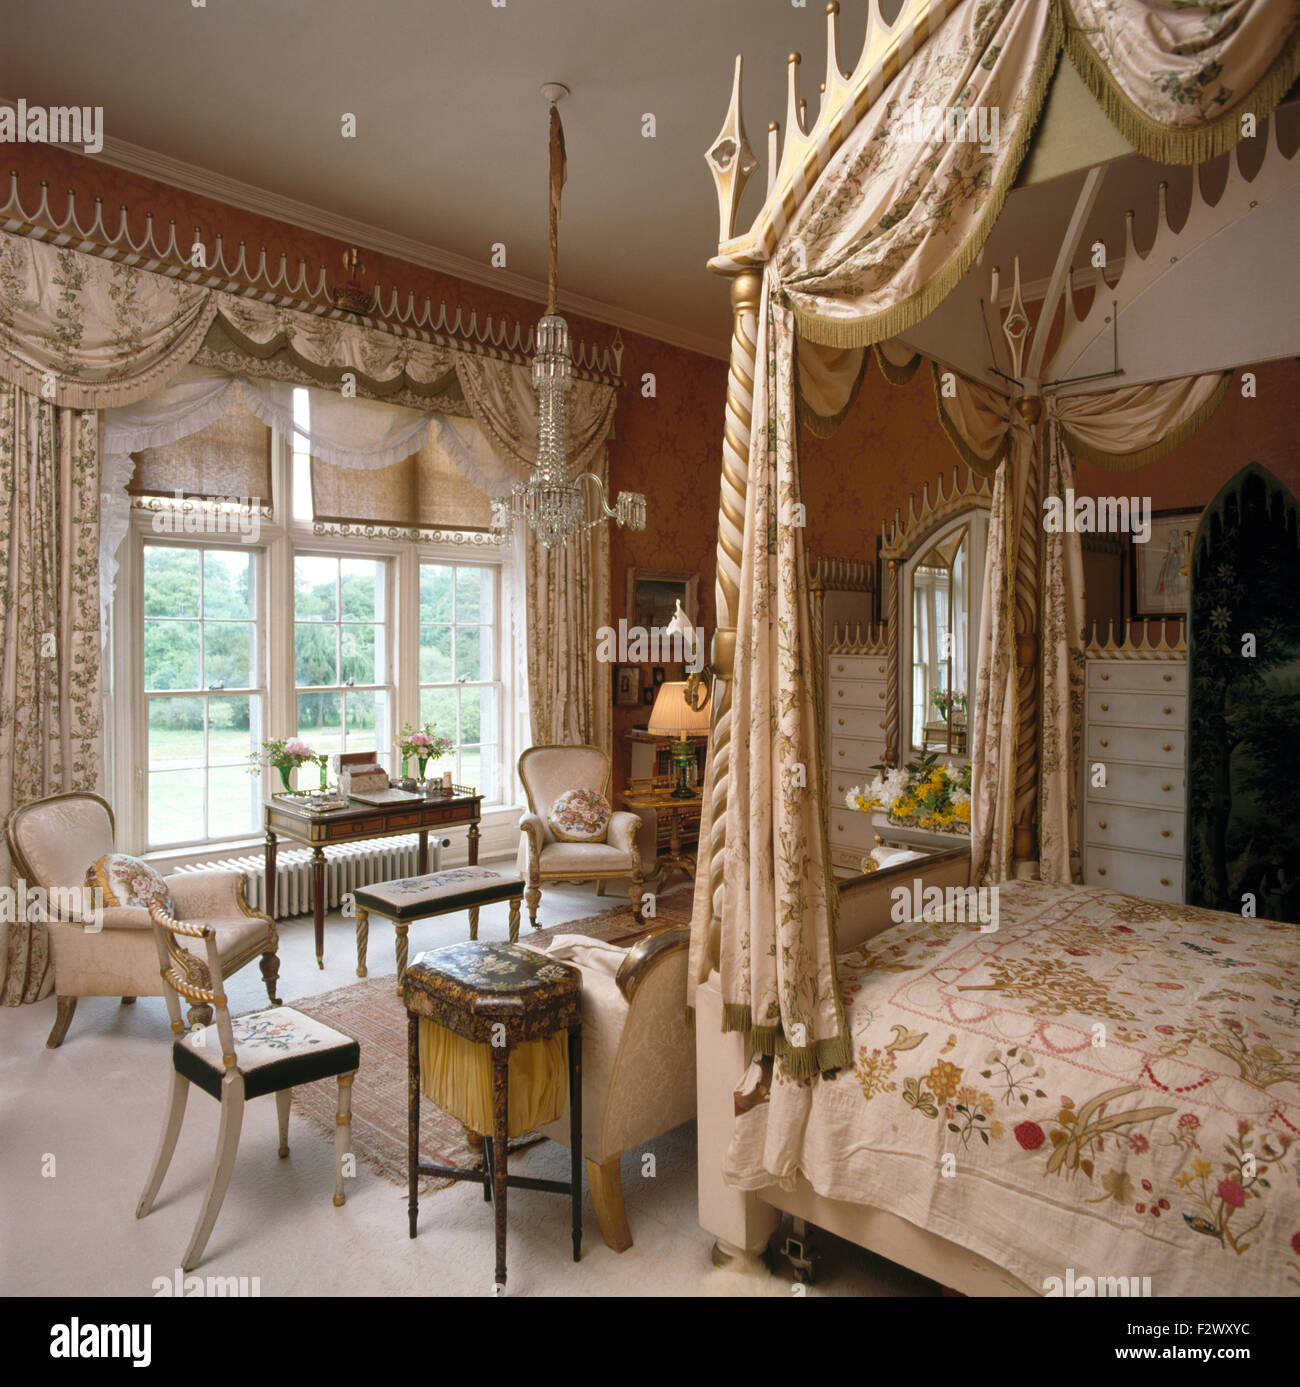 swagged curtains on window in opulent bedroom with silk drapes on a